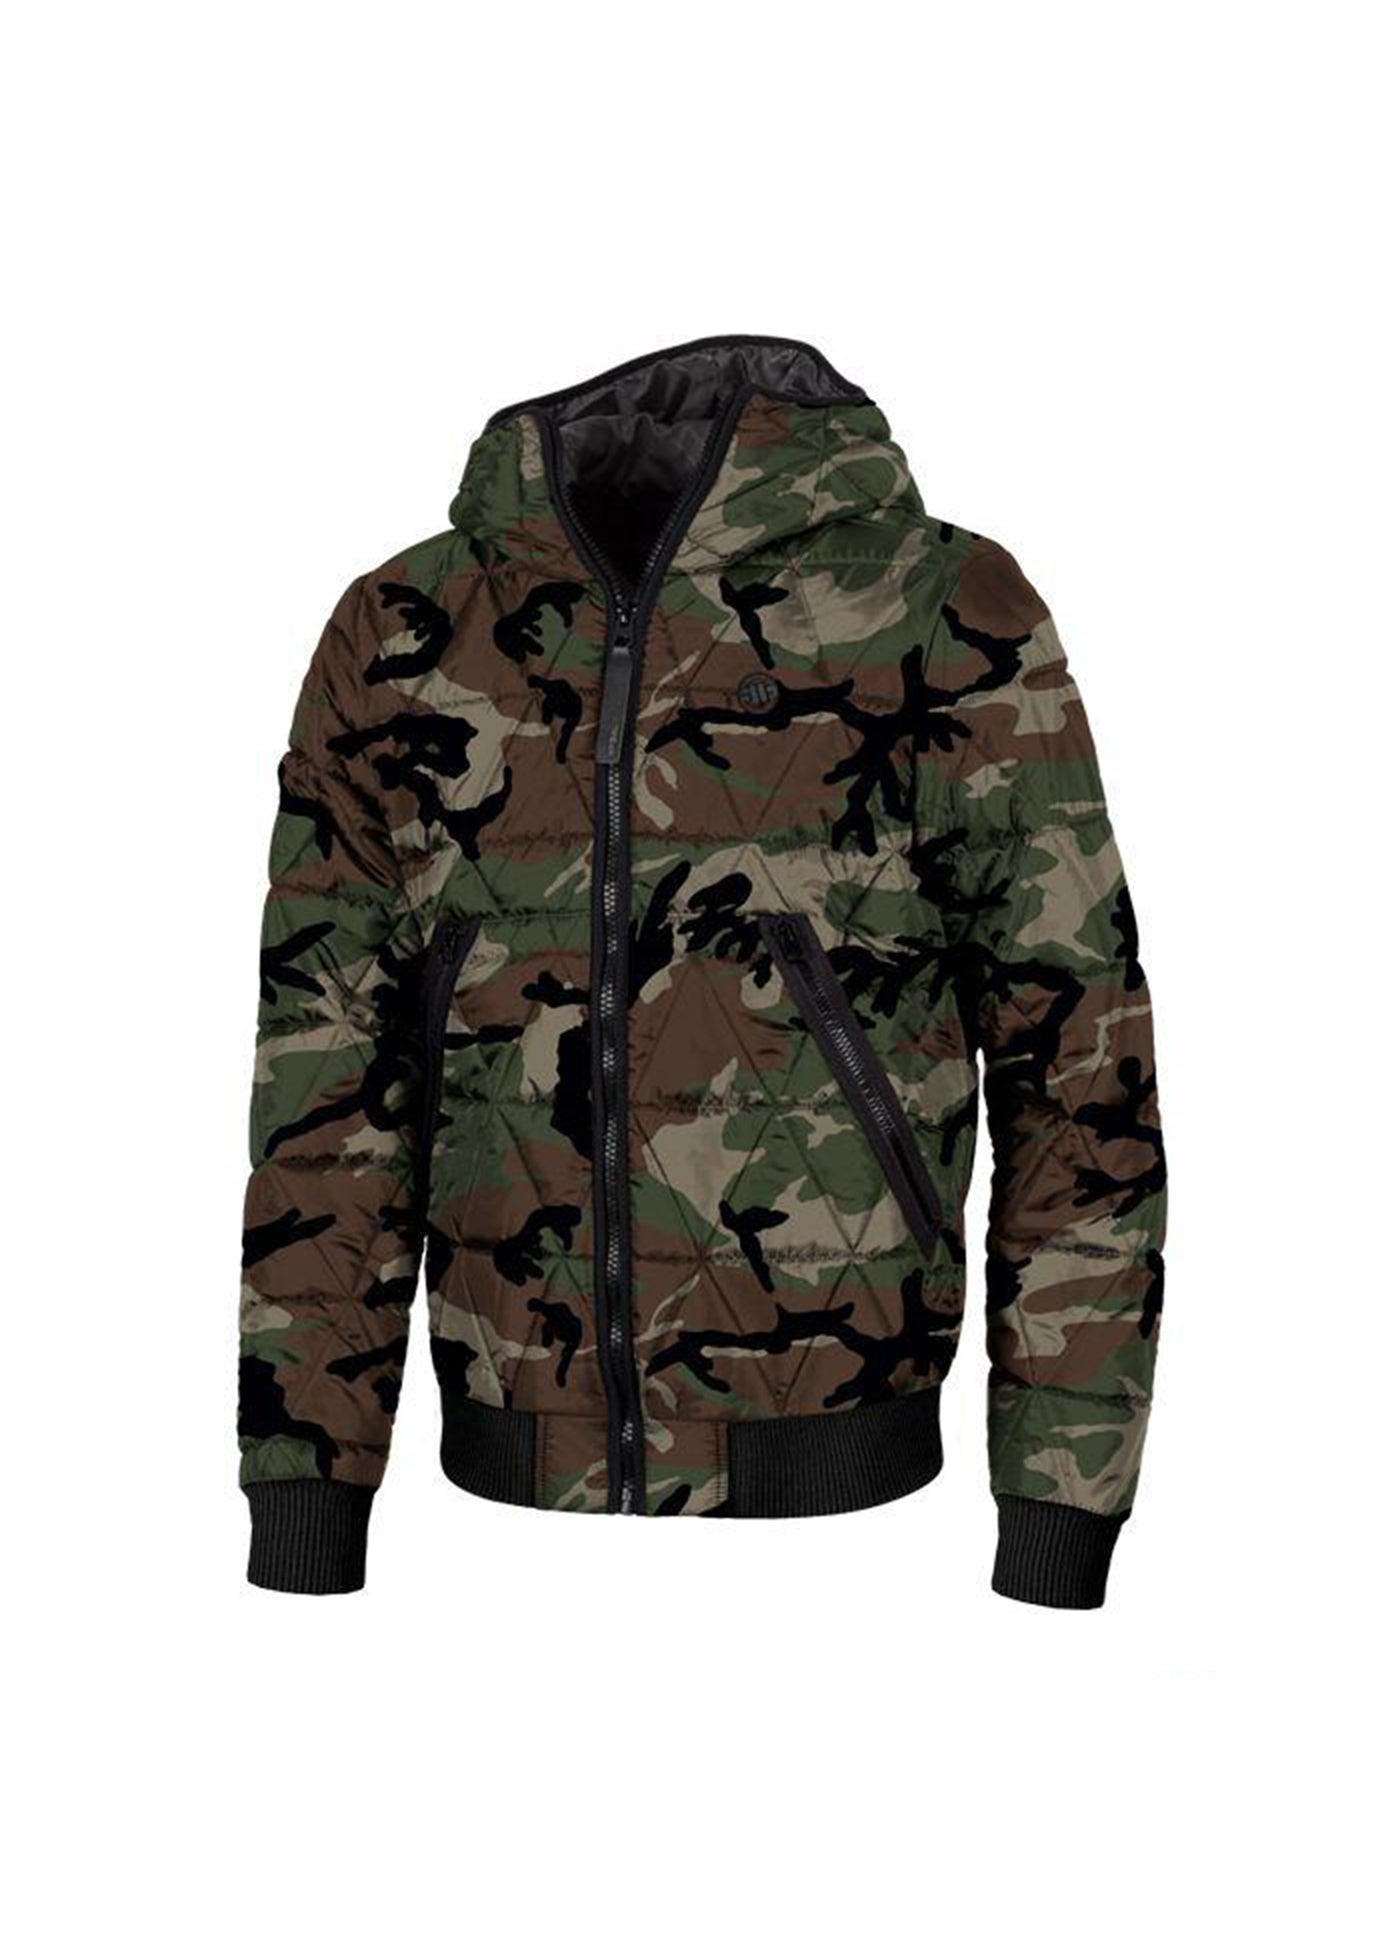 Jacket BUTLER Camo - buy at pitbull west coast store